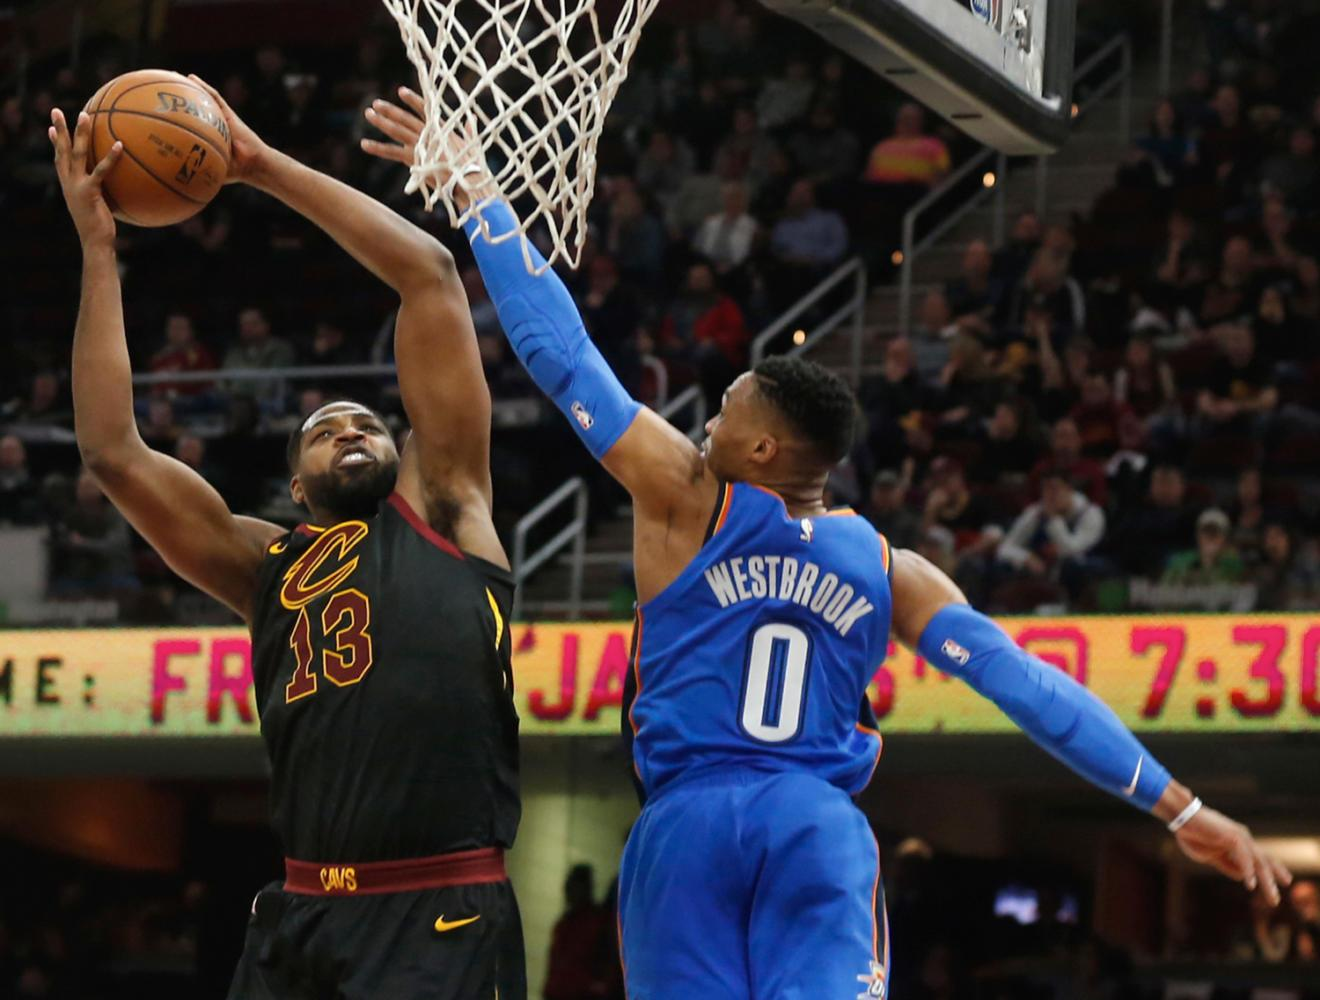 The Cleveland Cavaliers' Tristan Thompson, left, scores against the Oklahoma City Thunder's Russell Westbrook in the fourth quarter Jan. 20 at Quicken Loans Arena in Cleveland. (Leah Klafczynski/Akron Beacon Journal/TNS)